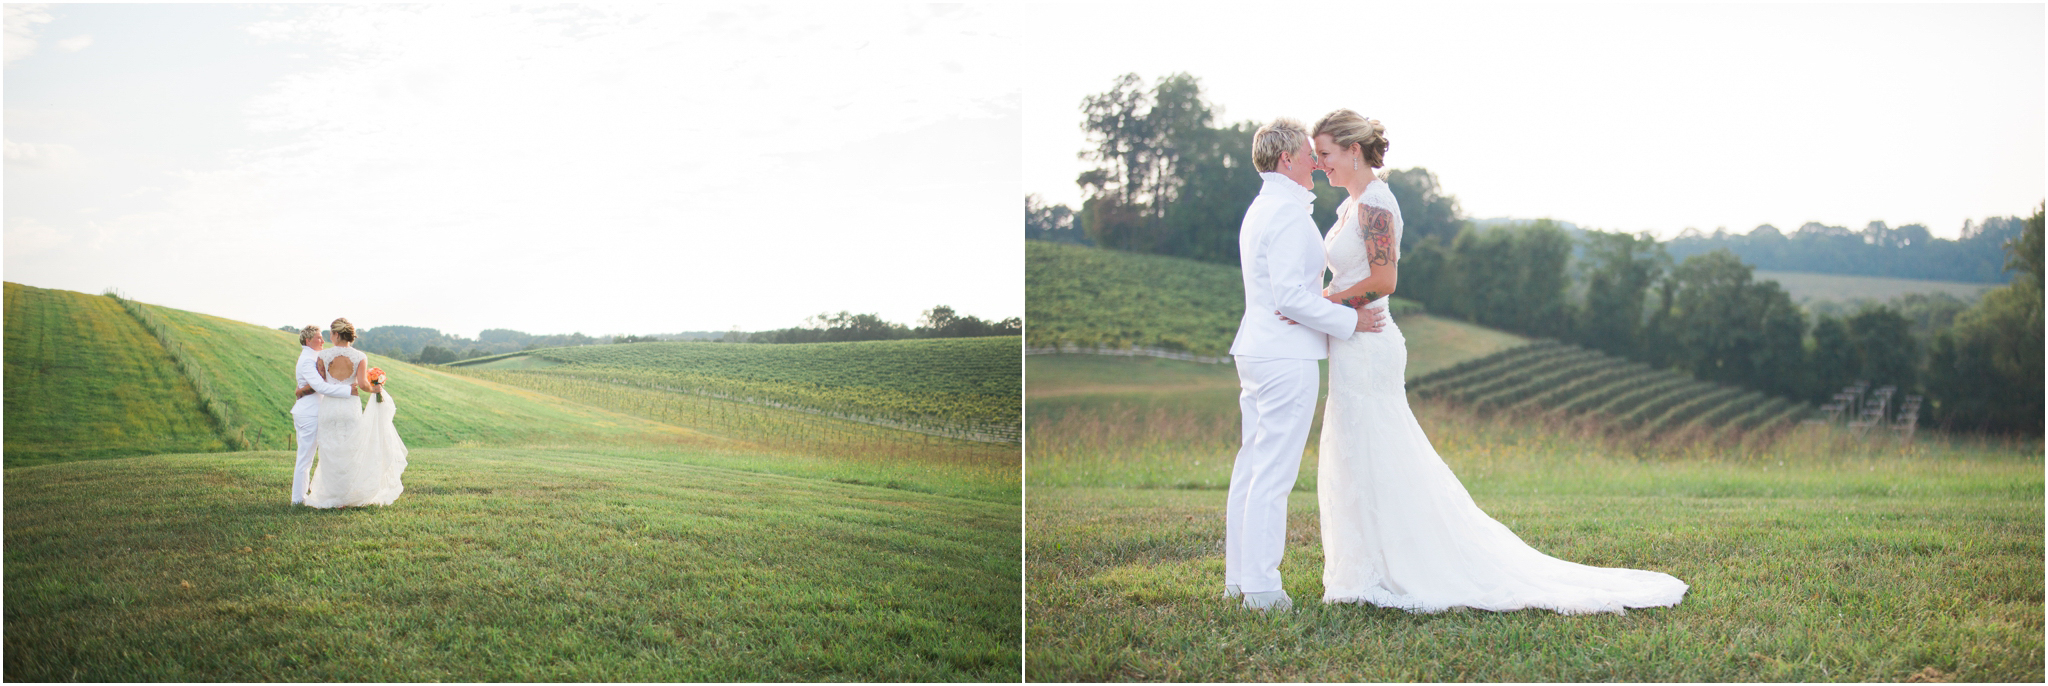 bethany-grace-photography-linganore-winecellars-same-sex-lgbtq-pink-blue-winery-outdoor-wedding-16.JPG